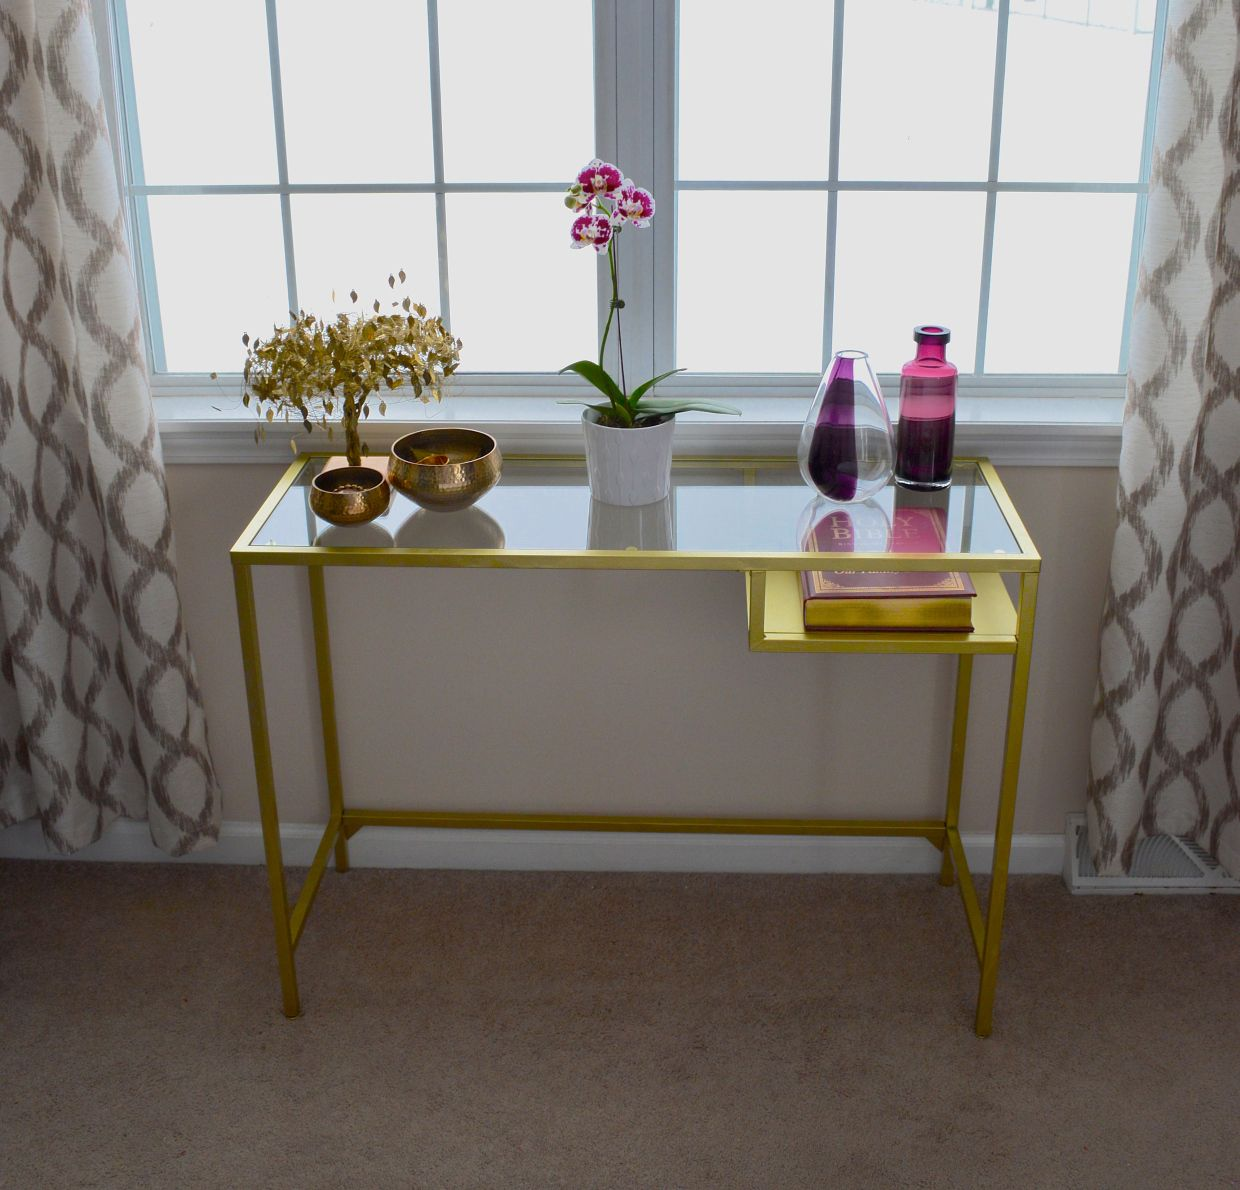 Ikea Vittsjo Computer Table Spray Painted Gold To Make A Chic Console Table Amazing Ikea Hack Ikea Console Table Diy Console Table Diy Console